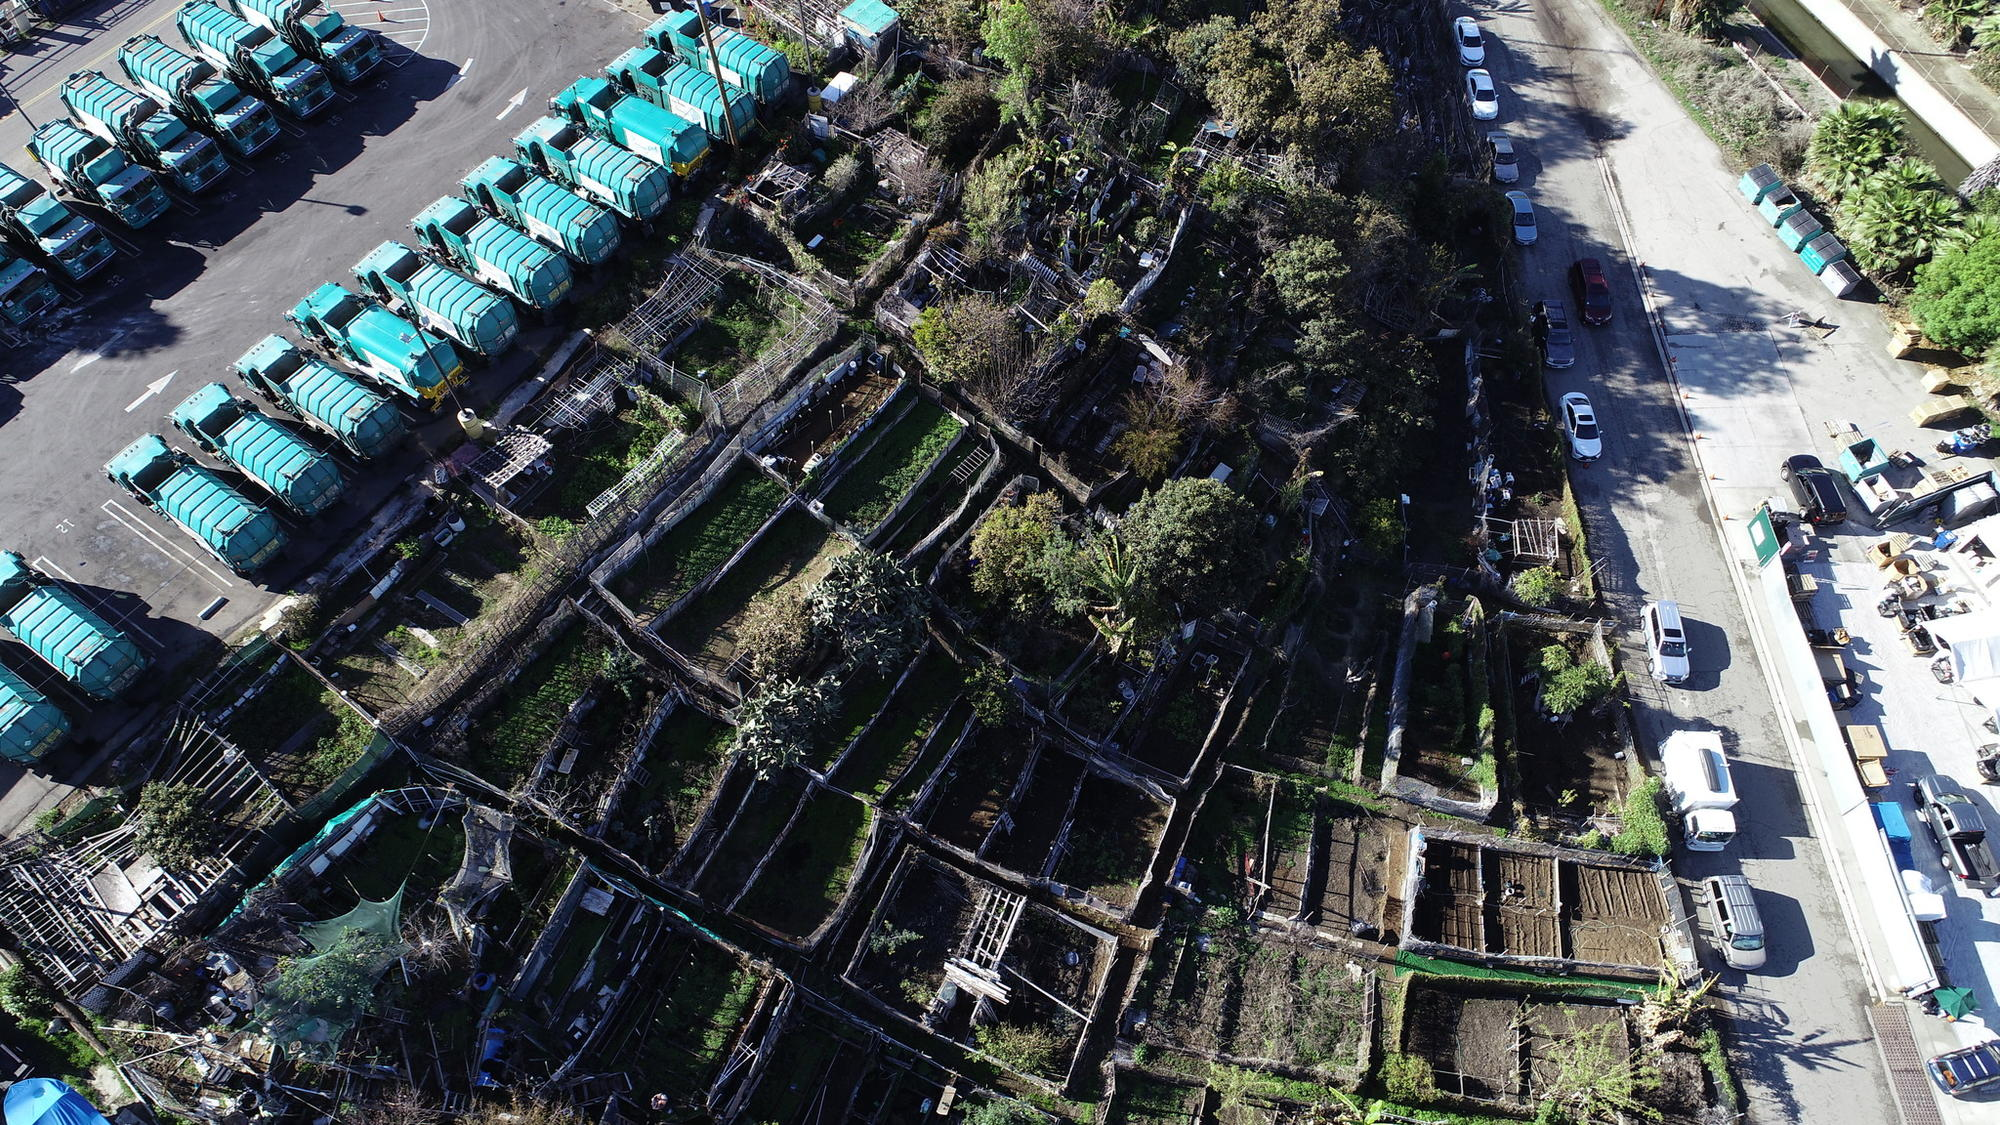 One of L A 's oldest community gardens thrived for decades  Then the